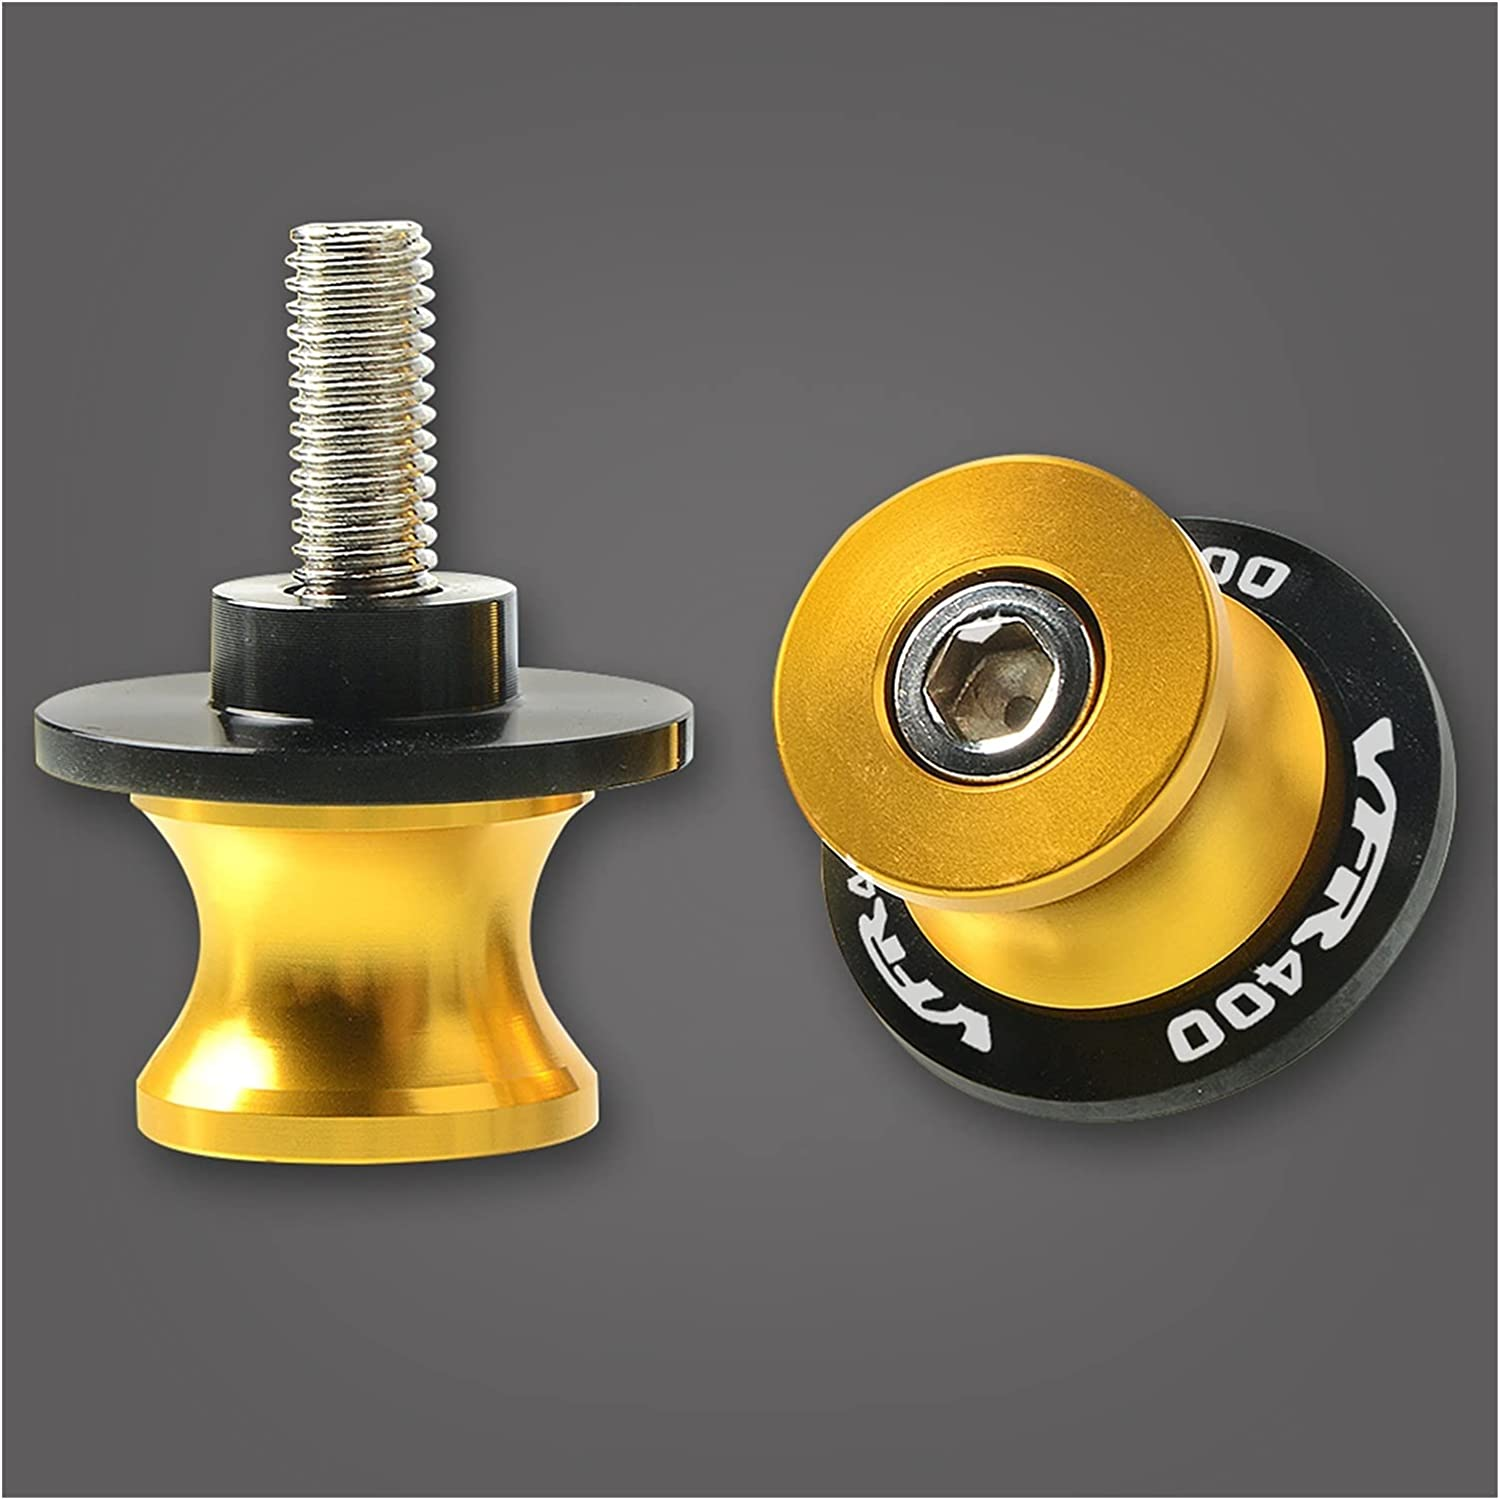 Motorcycle Swing Arm Spool For 1989-1996 Motorcycl VFR400 Hond-a Store Complete Free Shipping